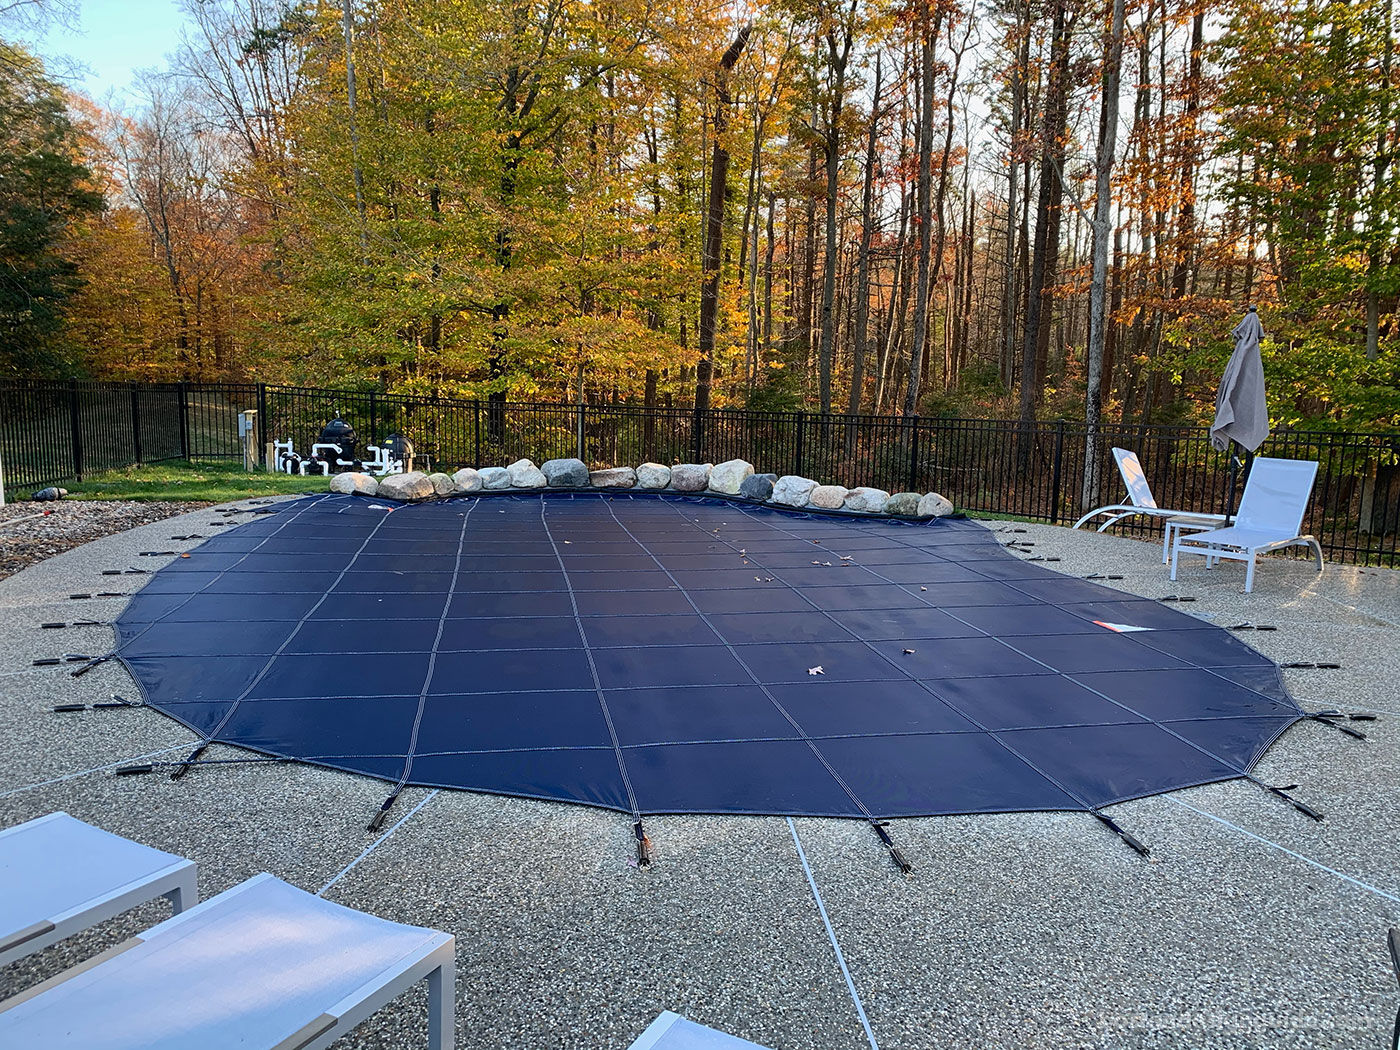 Custom gunite pool by top New England pool company SSG Pools & Spas with pool cover